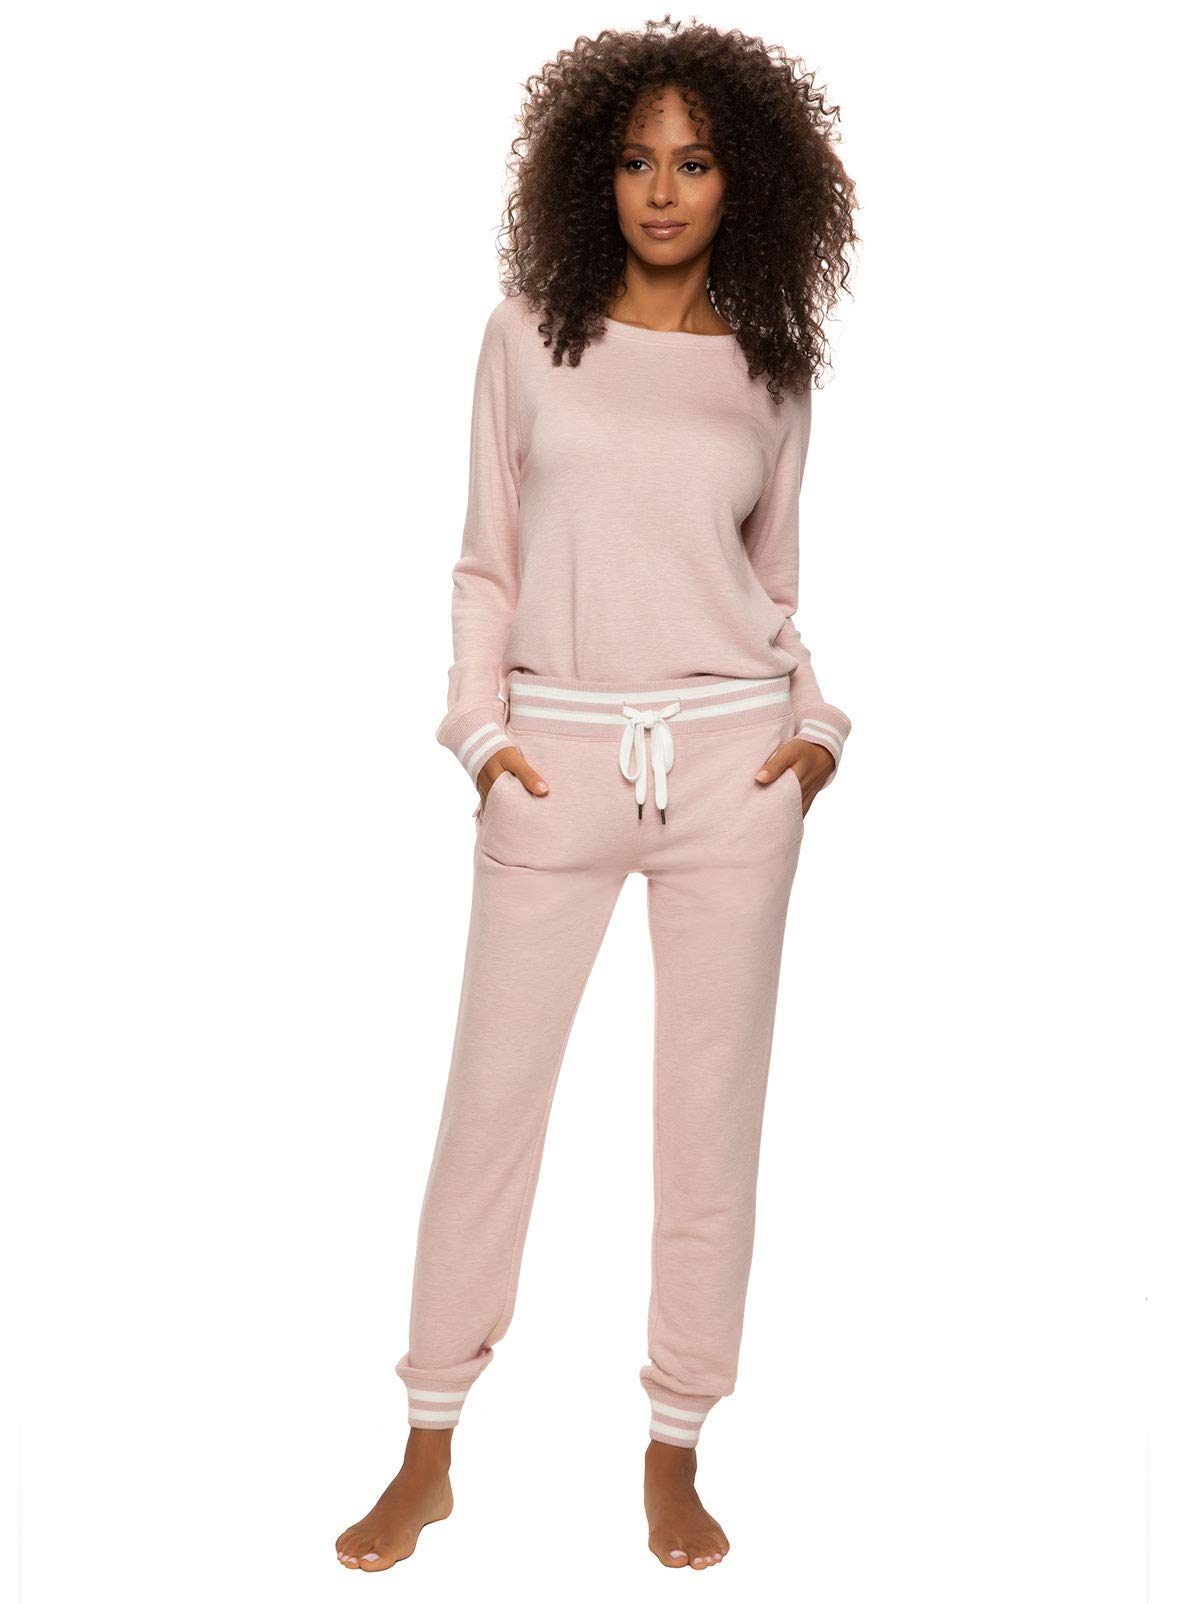 Women/'s Jogger Set The Perfect Gift for her Women/'s Summer Custom Clothing Tube Tops Women/'s Matching Sets